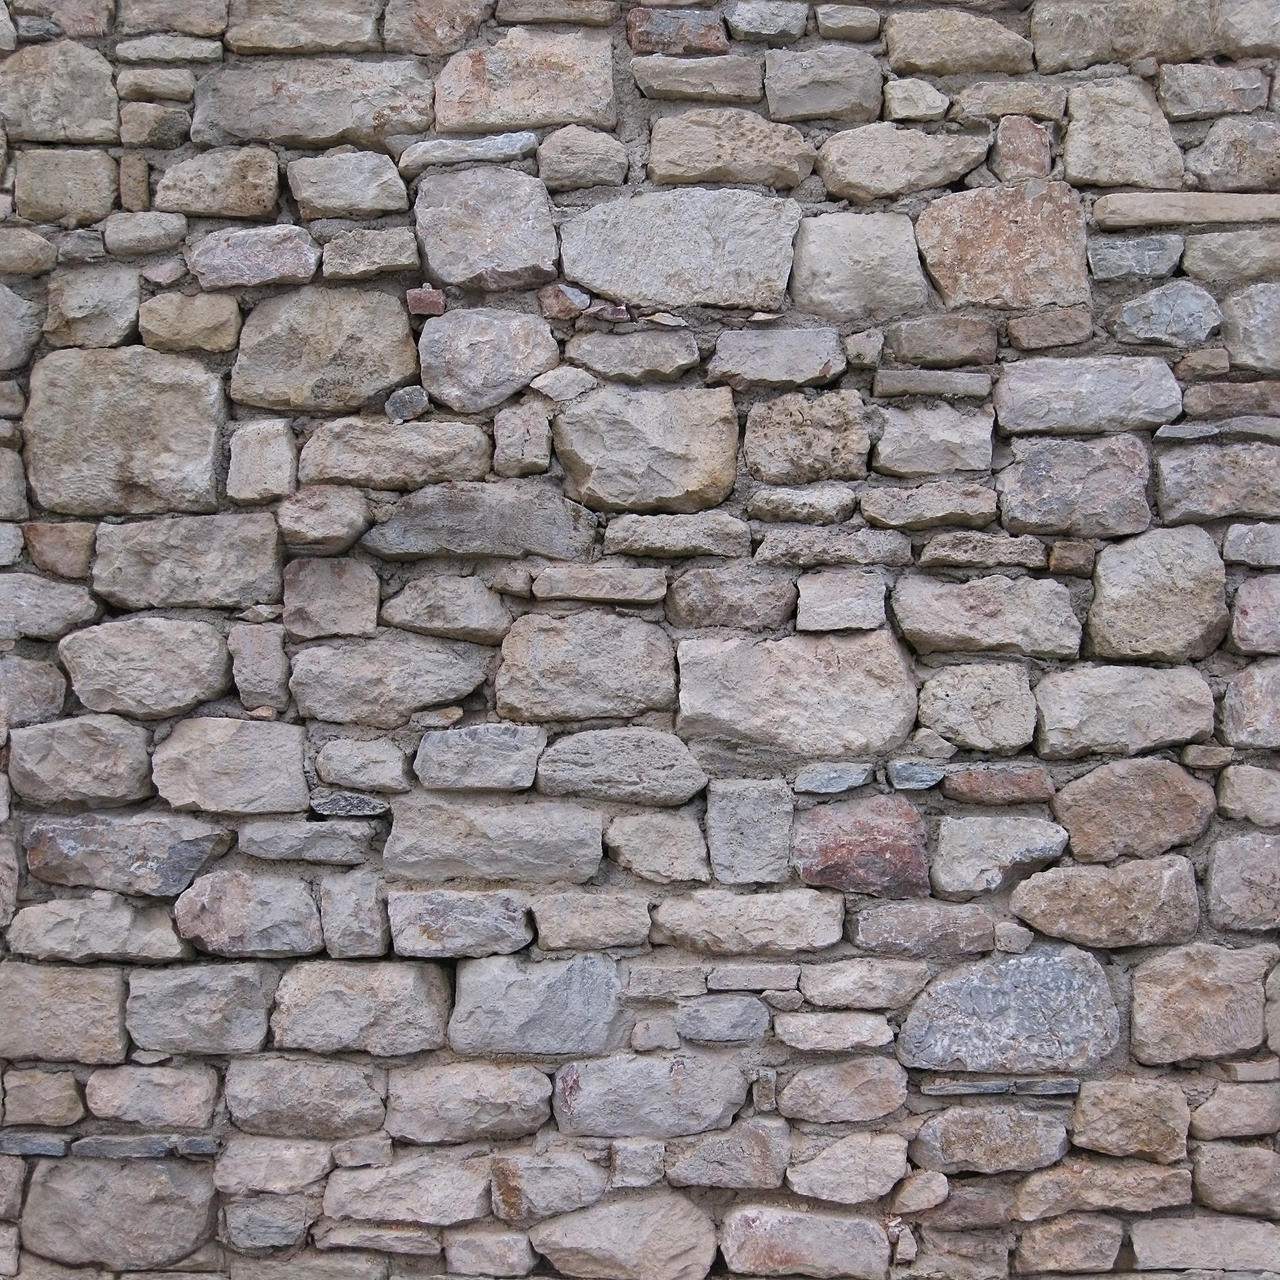 tileable stone wall texture01 by ftourini on DeviantArt